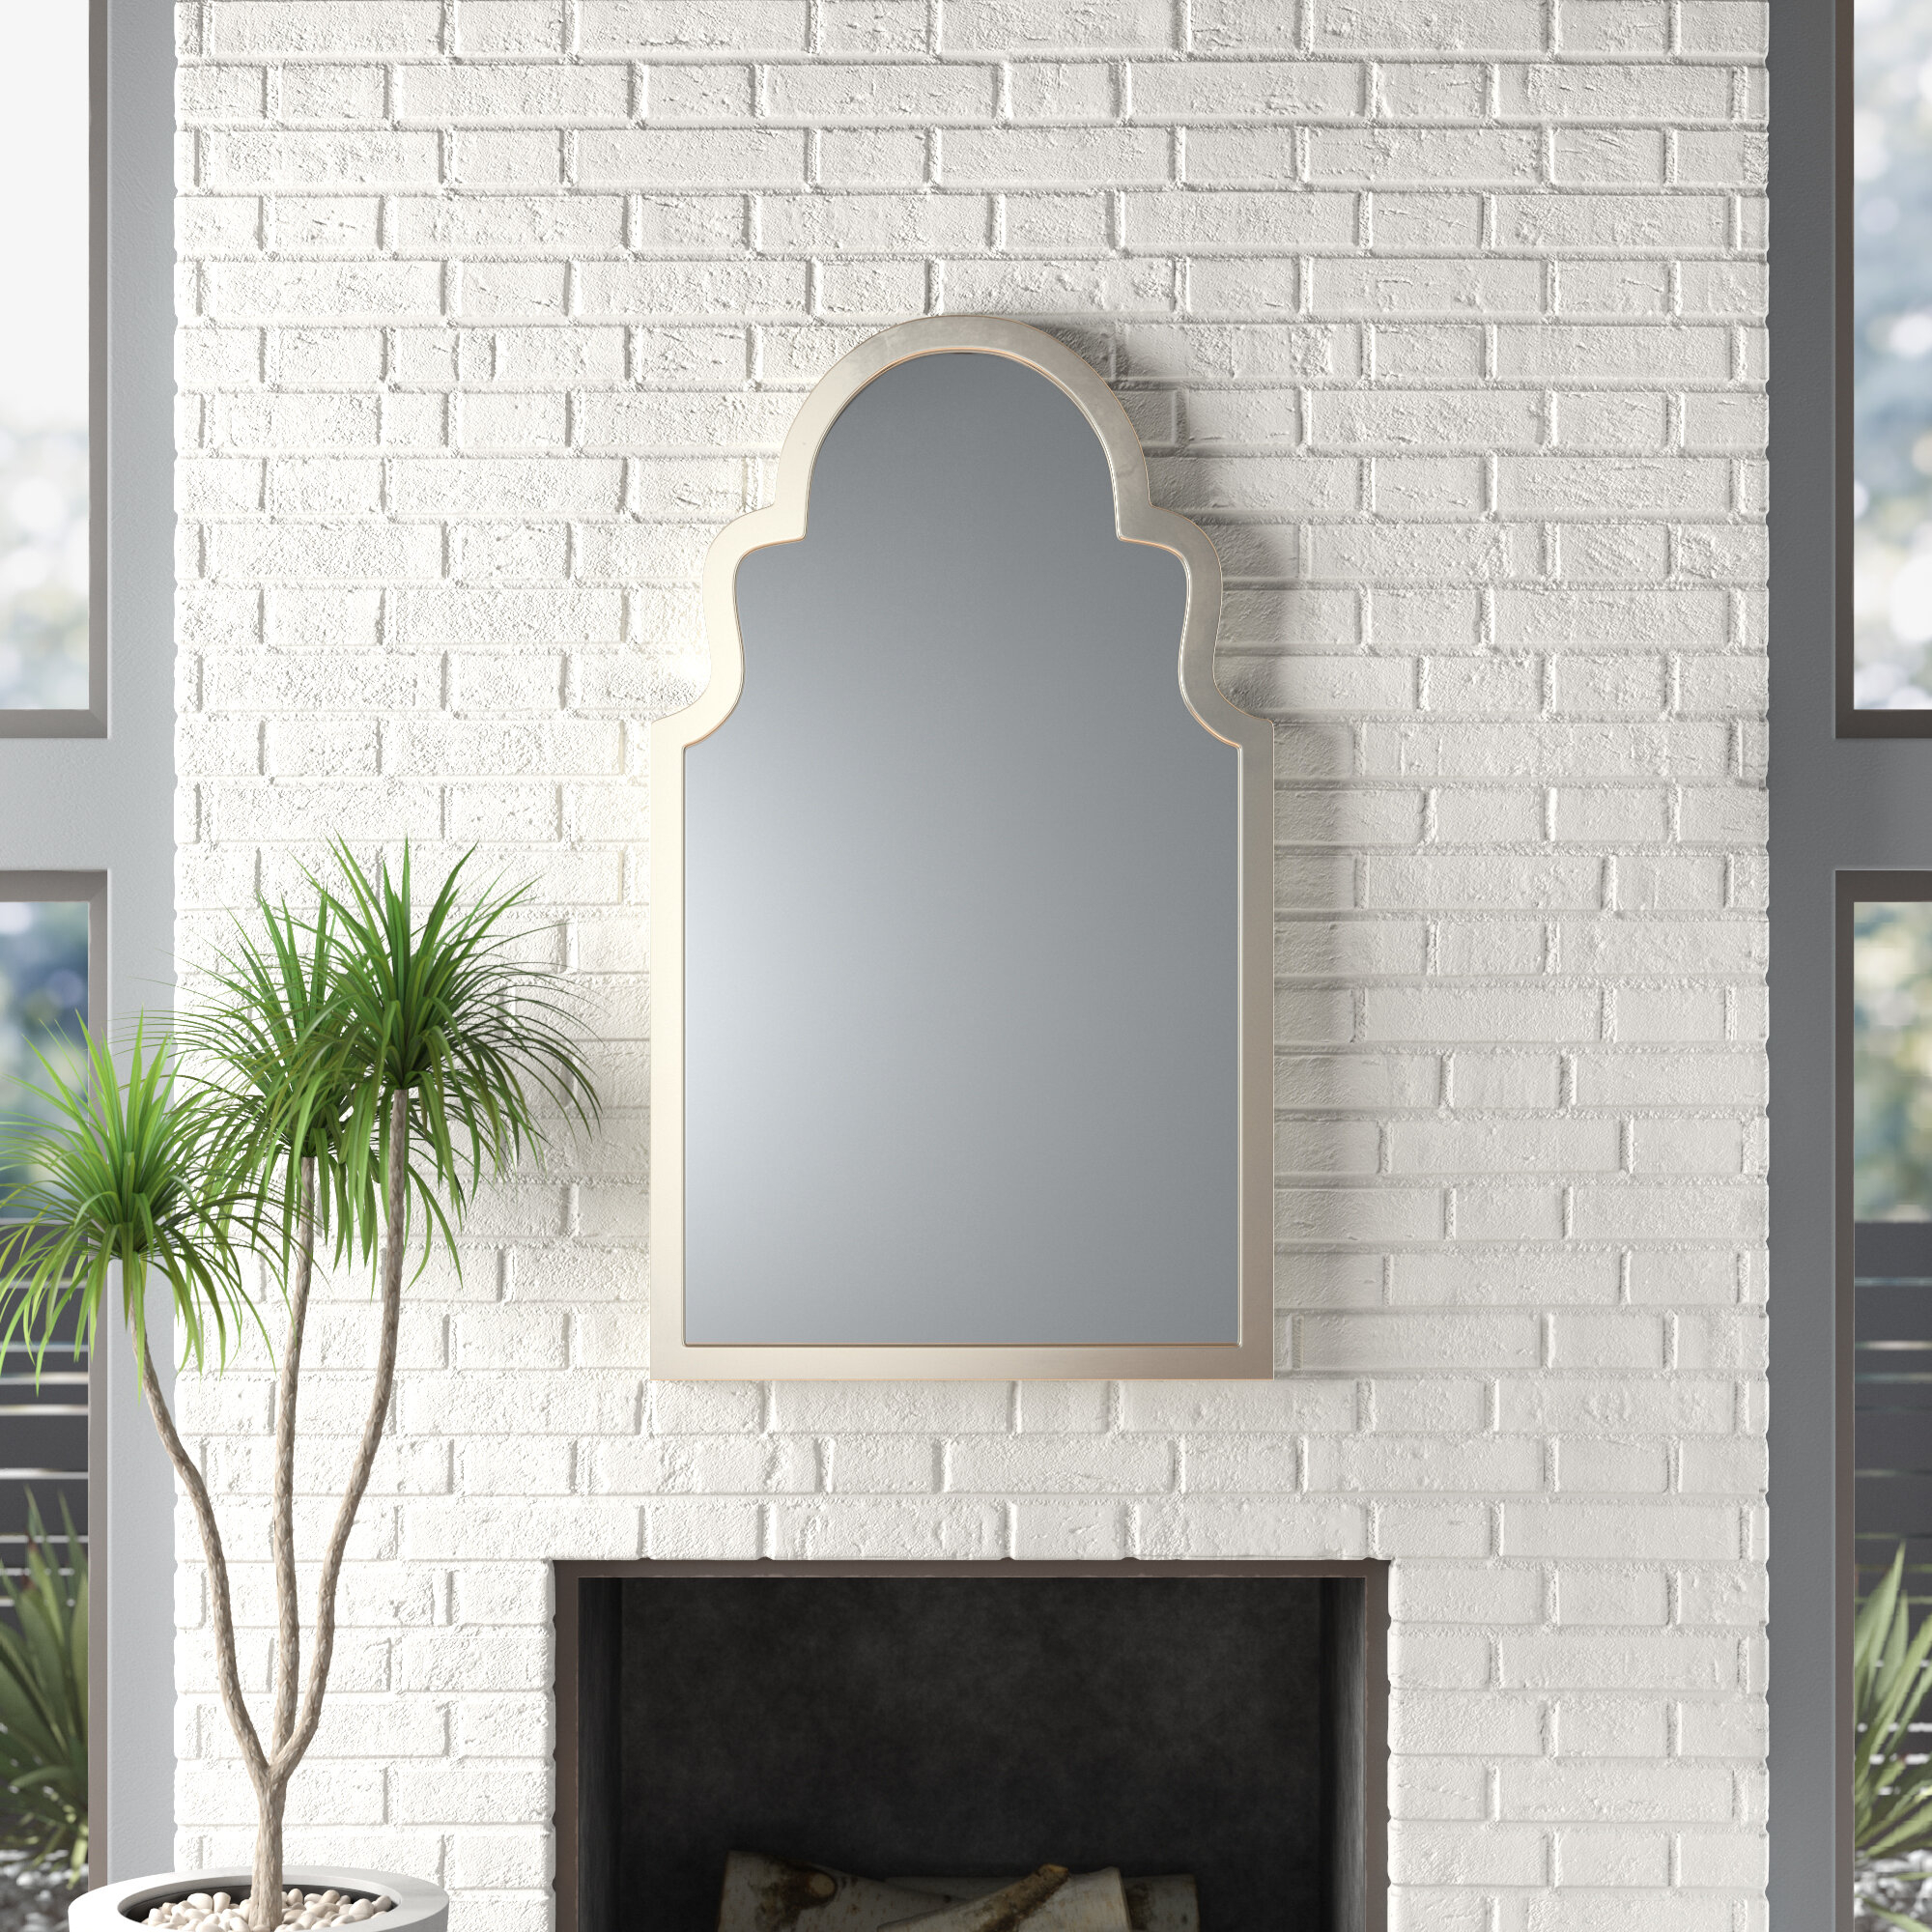 Modern Arch / Crowned Top Wall Mirrors | Allmodern Pertaining To Dariel Tall Arched Scalloped Wall Mirrors (Image 13 of 20)